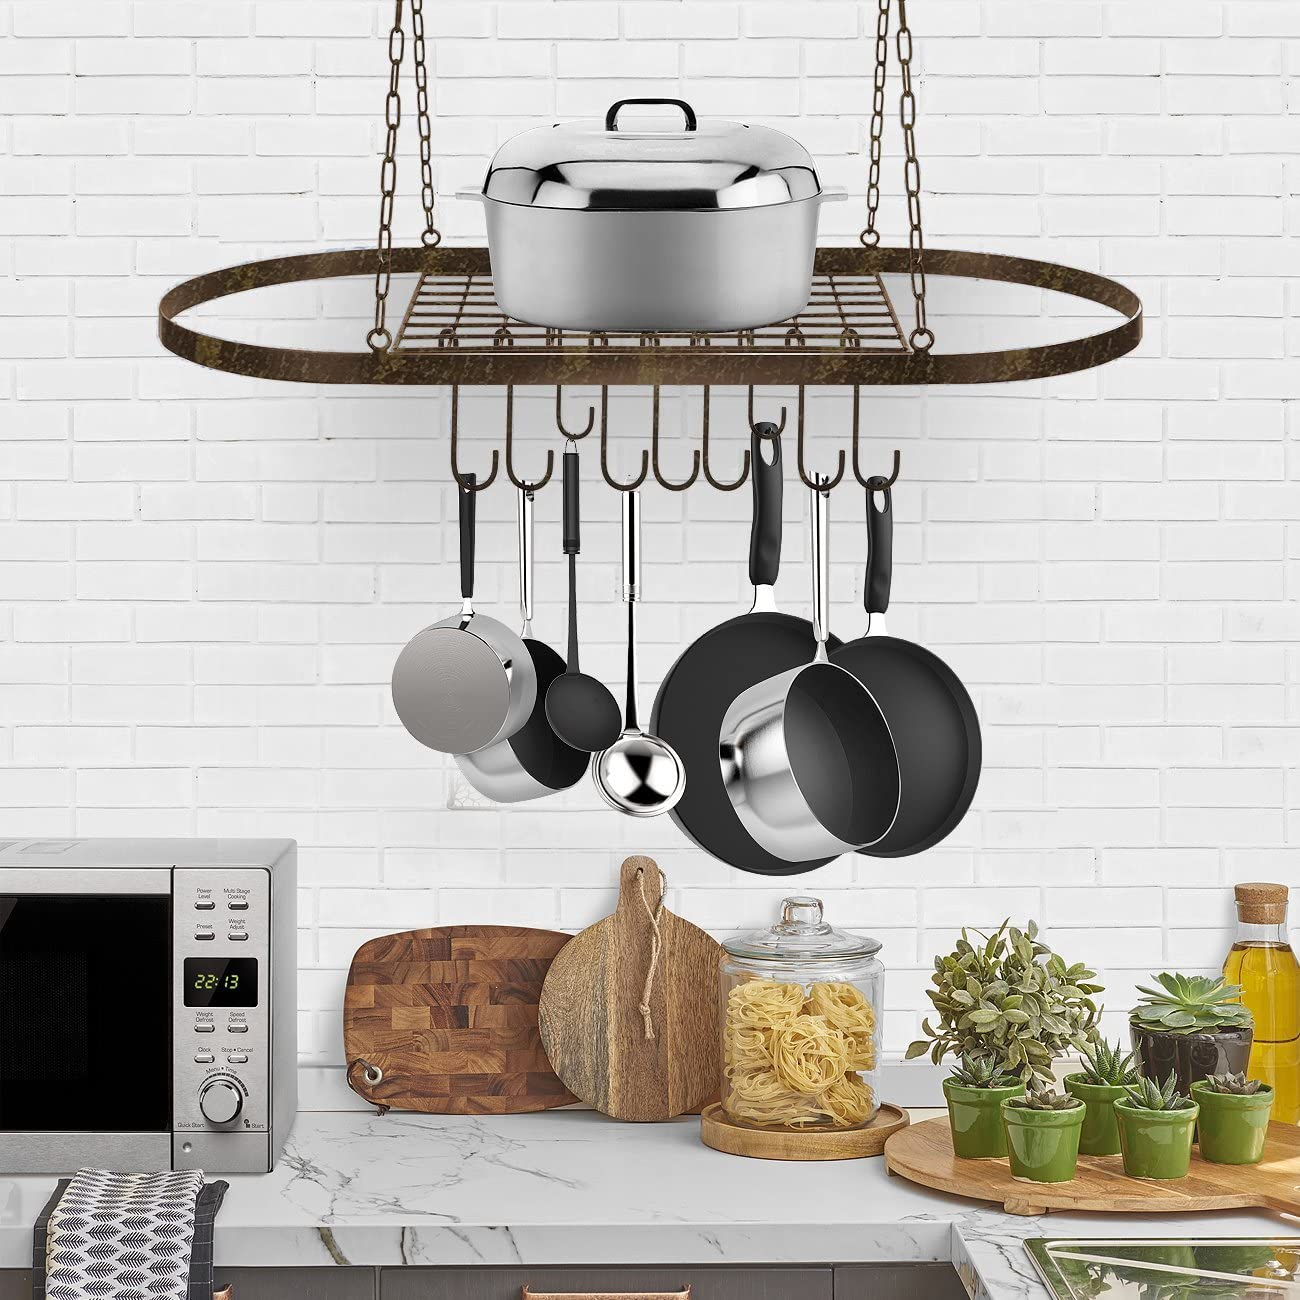 Sorbus Pot and Pan Rack for Ceiling with Hooks — Decorative Oval Mounted Storage Rack — Multi-Purpose Organizer for Home, Restaurant, Kitchen Cookware, Utensils, Books, Household (Rustic)